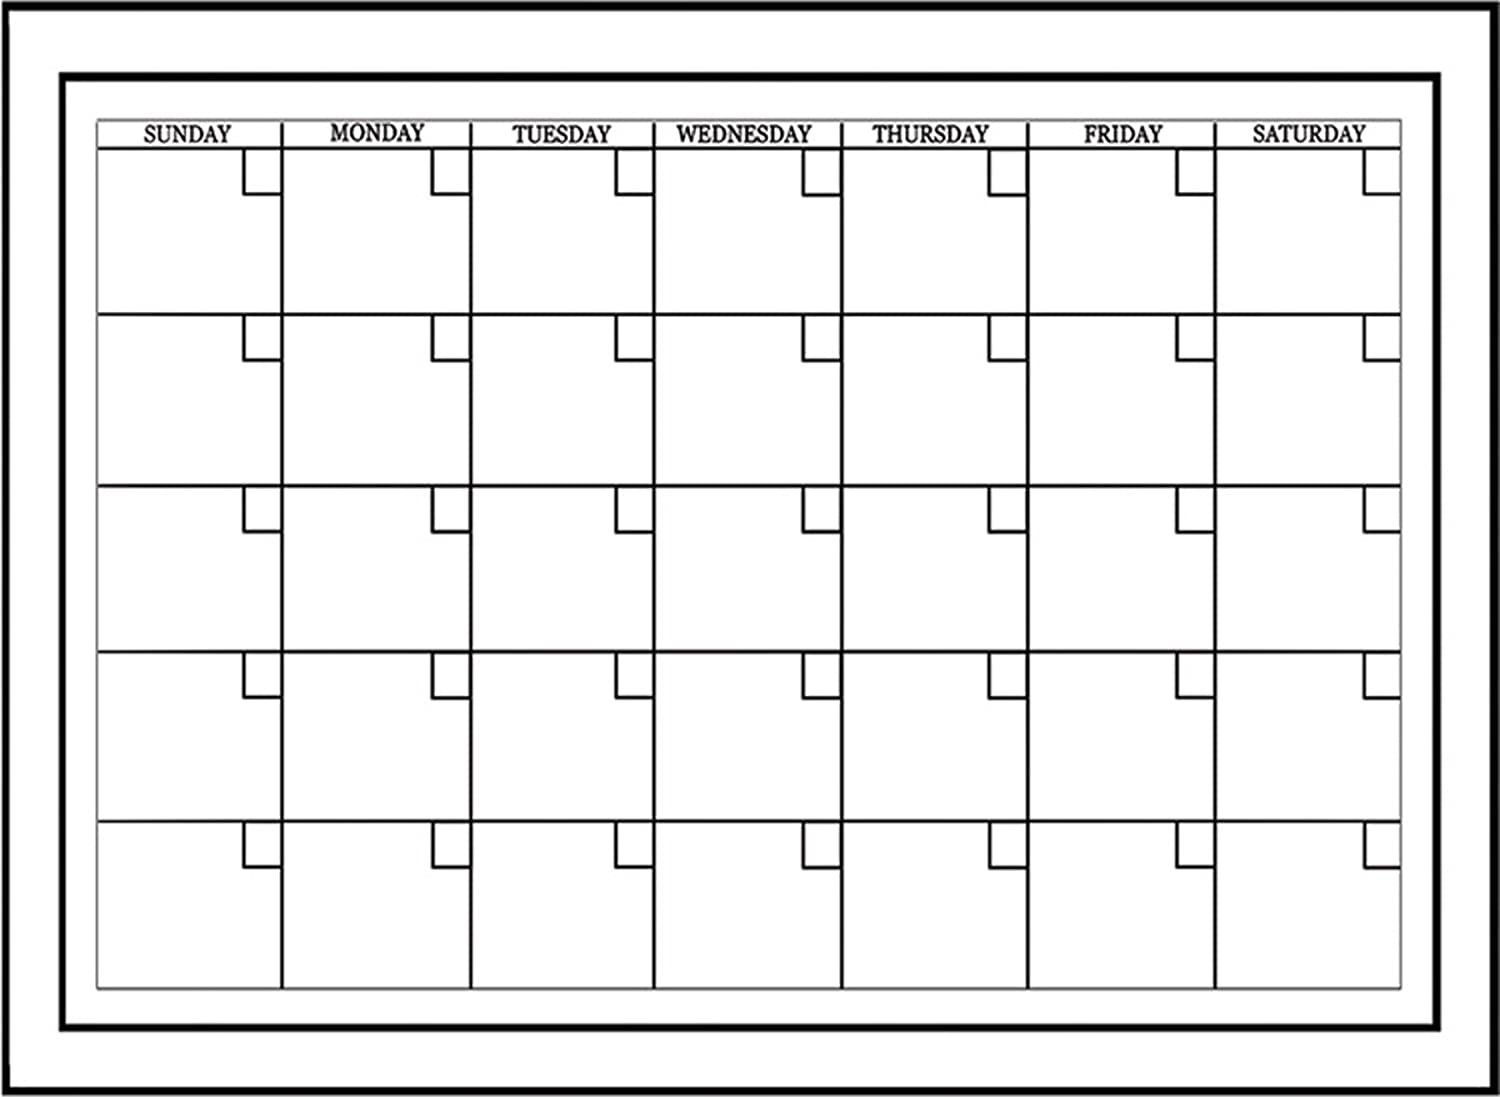 Brewster Wall Pops WPE94575 Peel Stick White Board with Marker – Blank Monthly Calendar